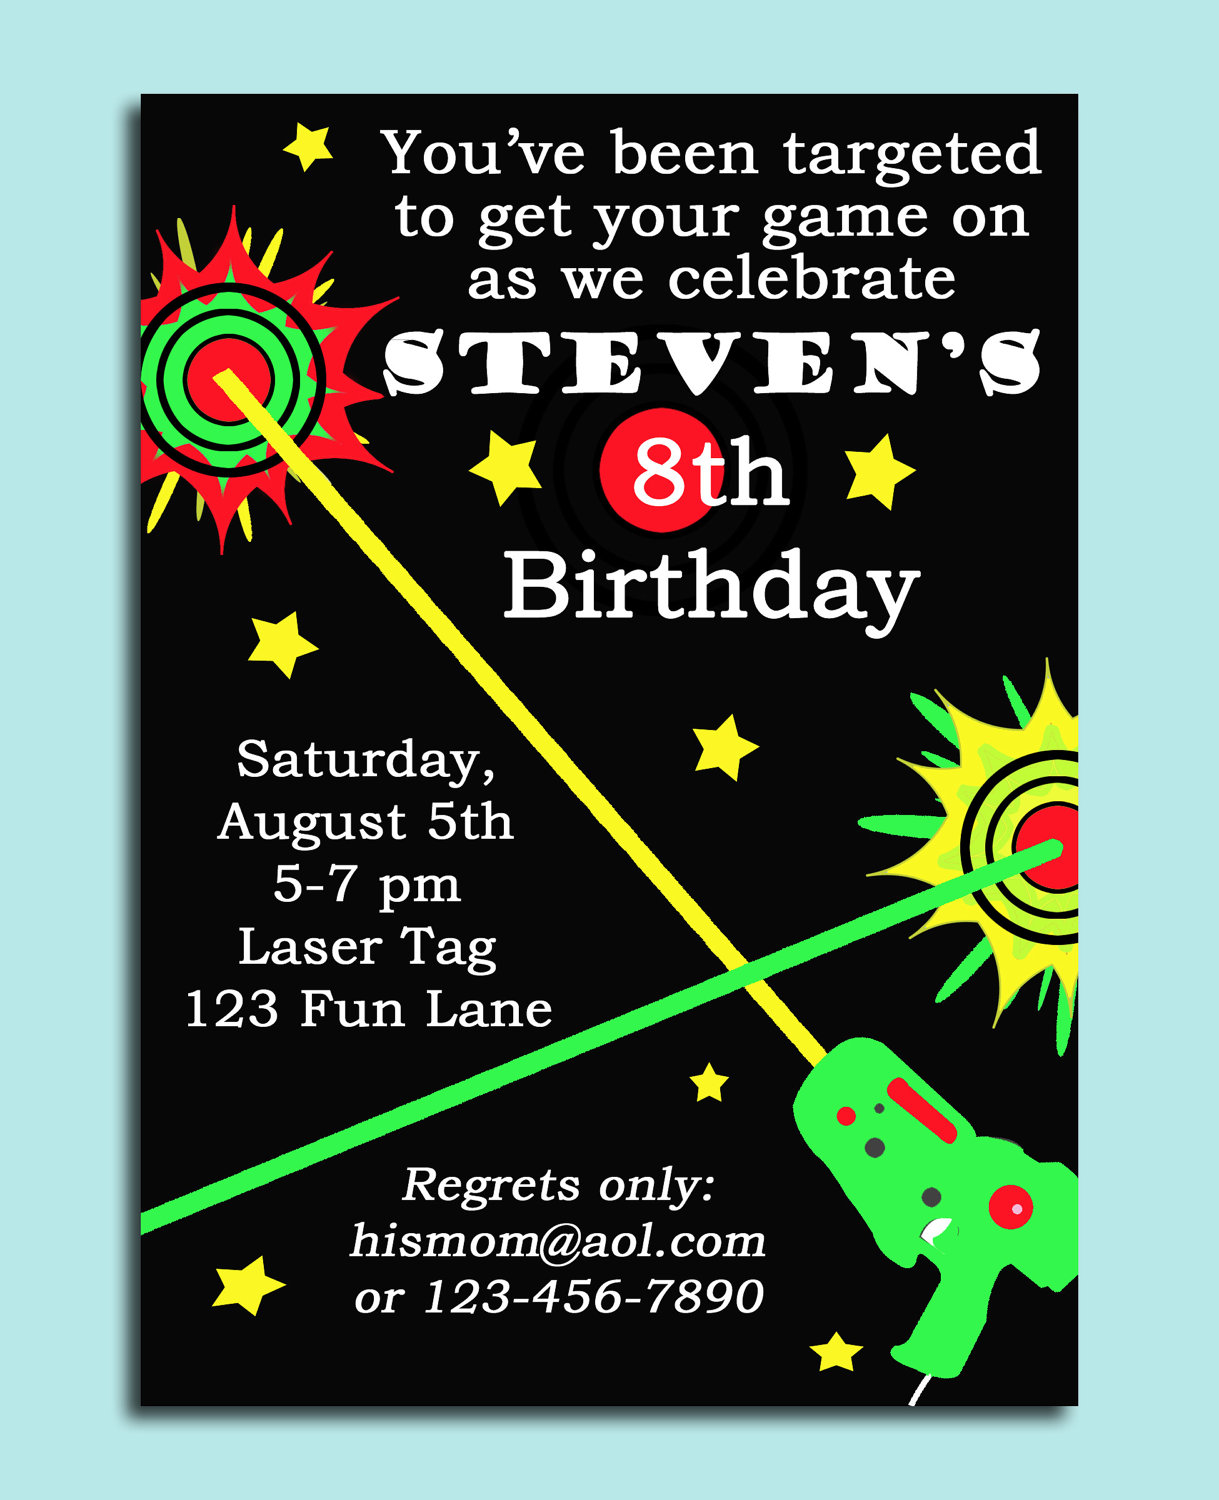 laser tag birthday party invitation template free ; 40th_birthday_ideas__free_laser_tag_birthday_invitation_templates_3